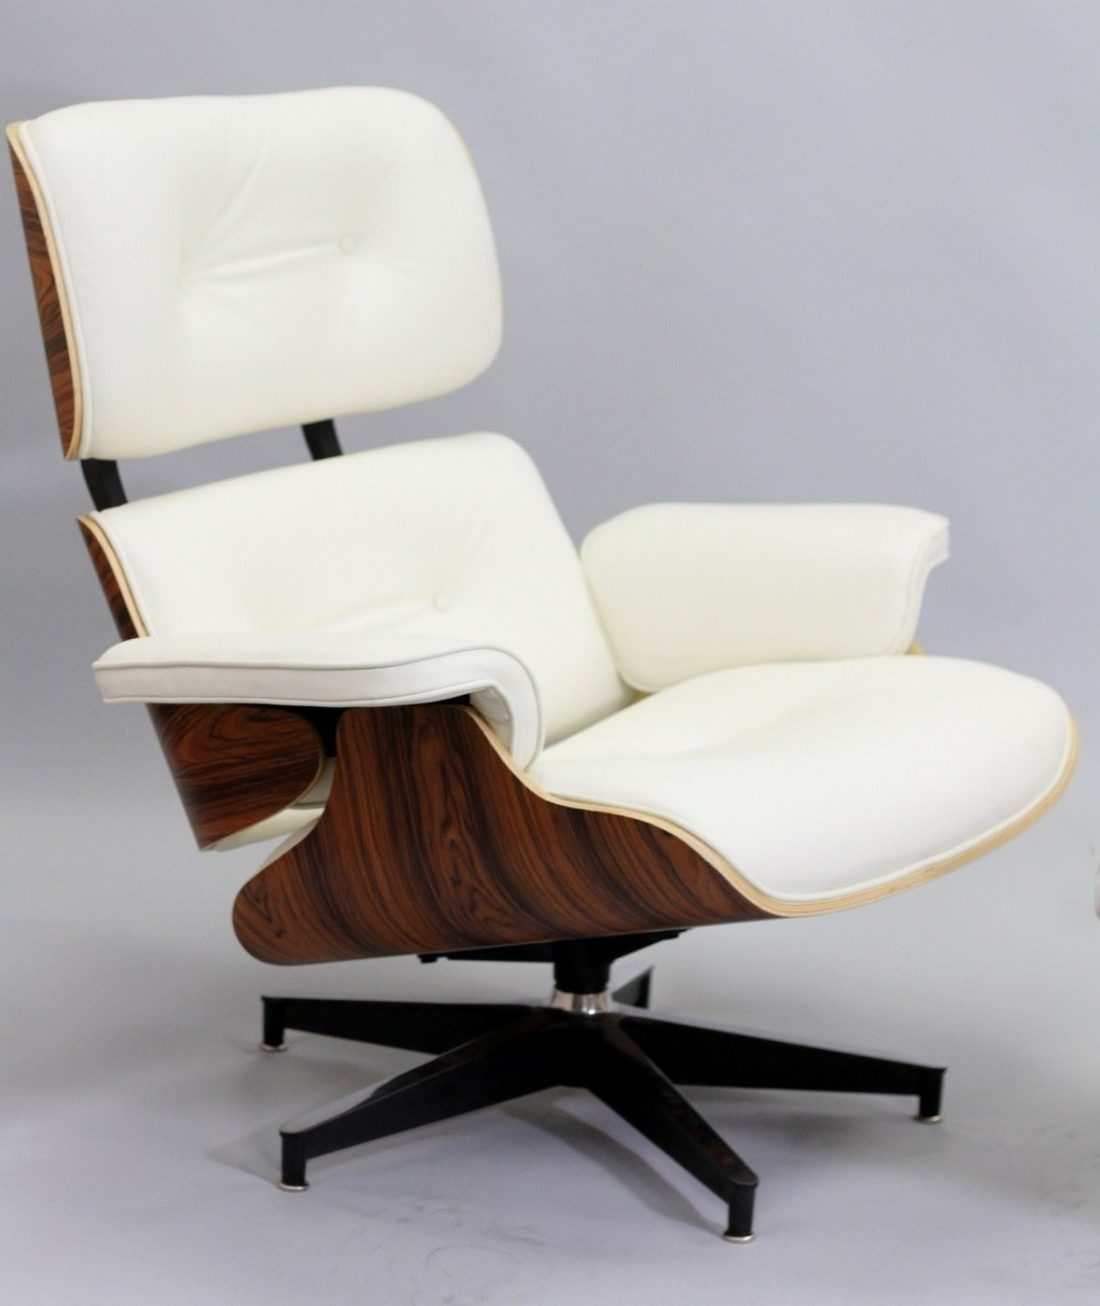 Herman miller eames chair and ottoman copy cat chic for Sitting easy chairs